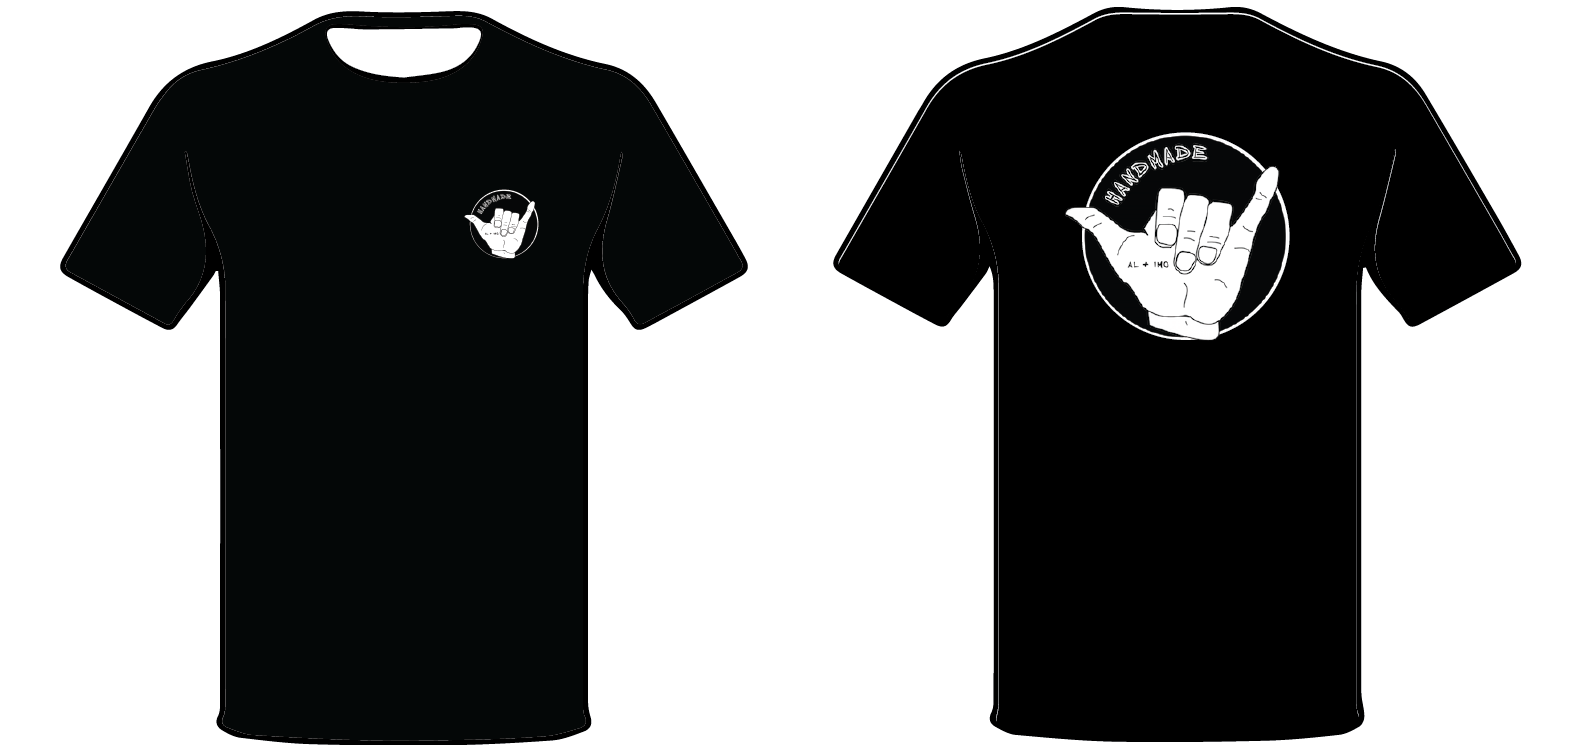 al and imo handmade t-shirt designs.png